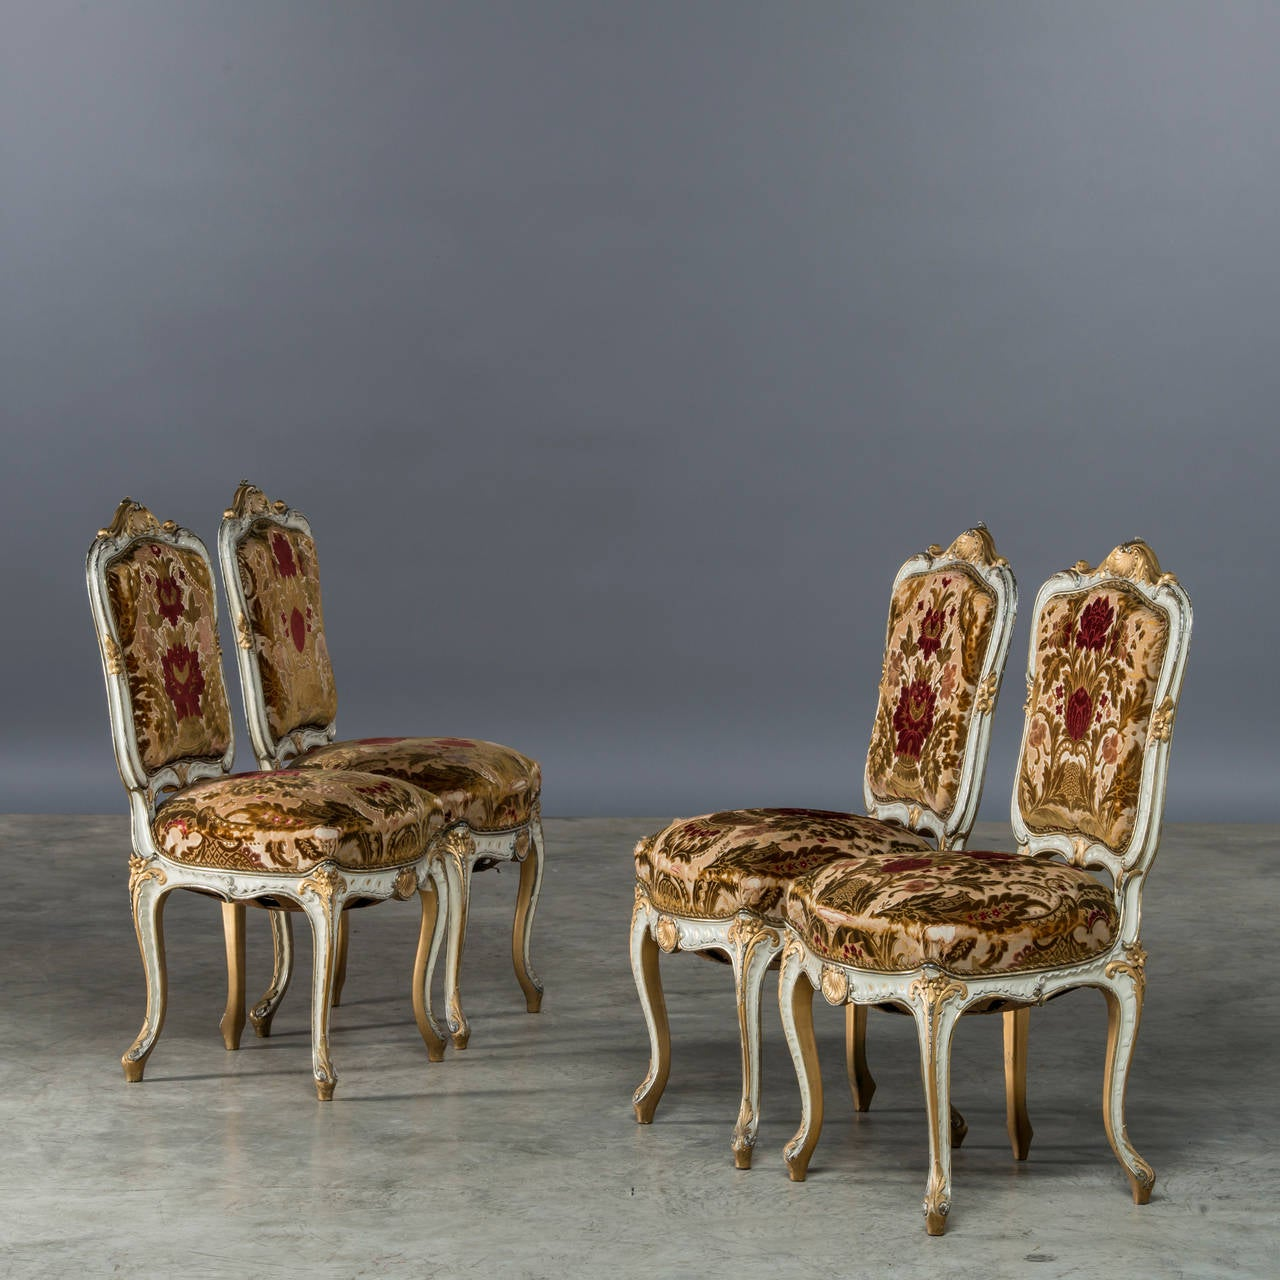 royal furniture from amalienborg palace the queen 39 s castle for sale